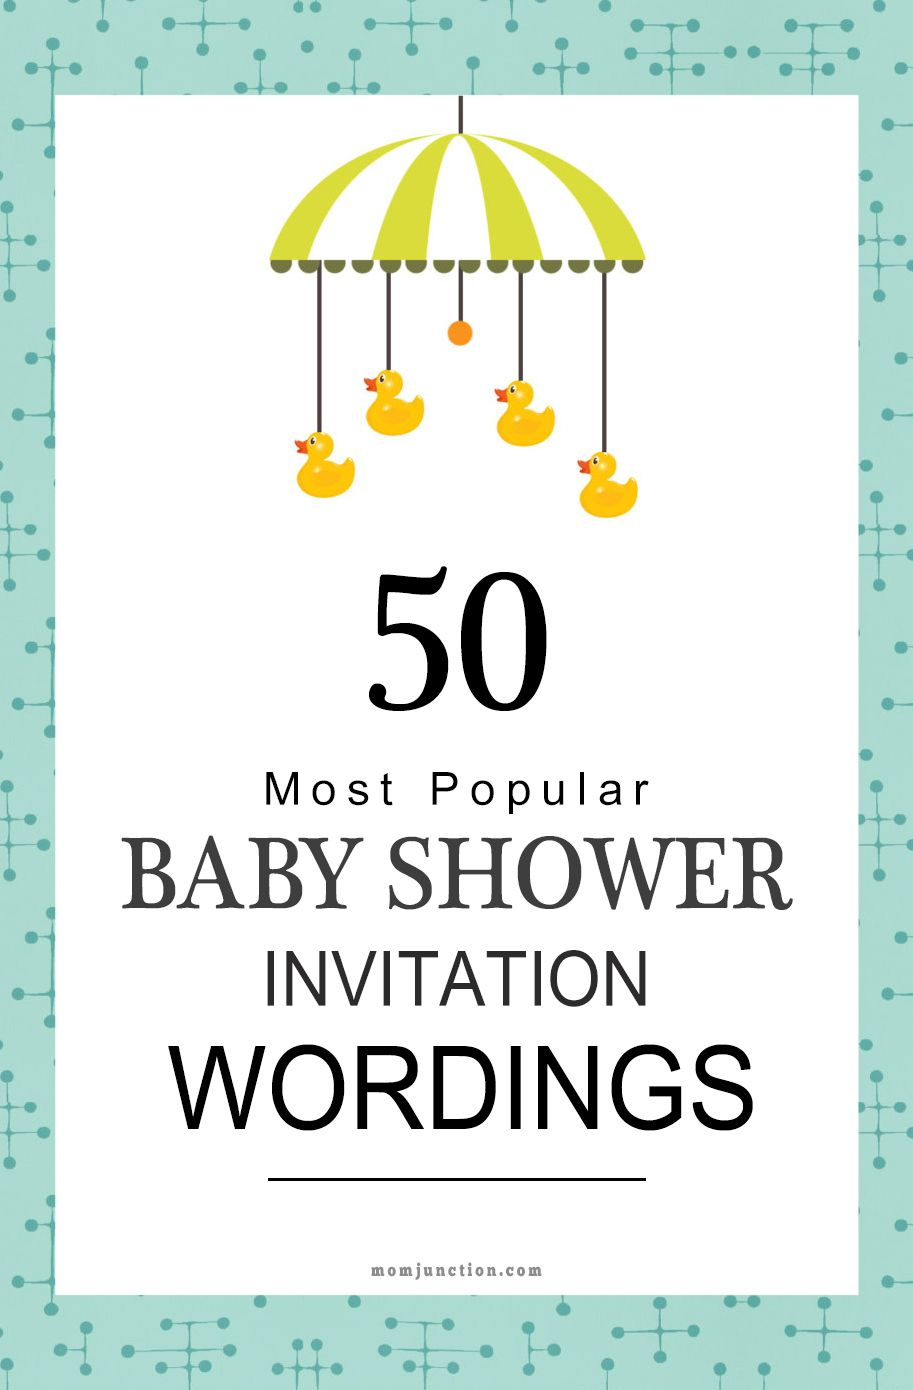 Medium Size of Baby Shower:delightful Baby Shower Invitation Wording Picture Designs Arreglos Baby Shower Niño Books For Baby Shower Unique Baby Shower Favors Baby Shower Outfit Guest